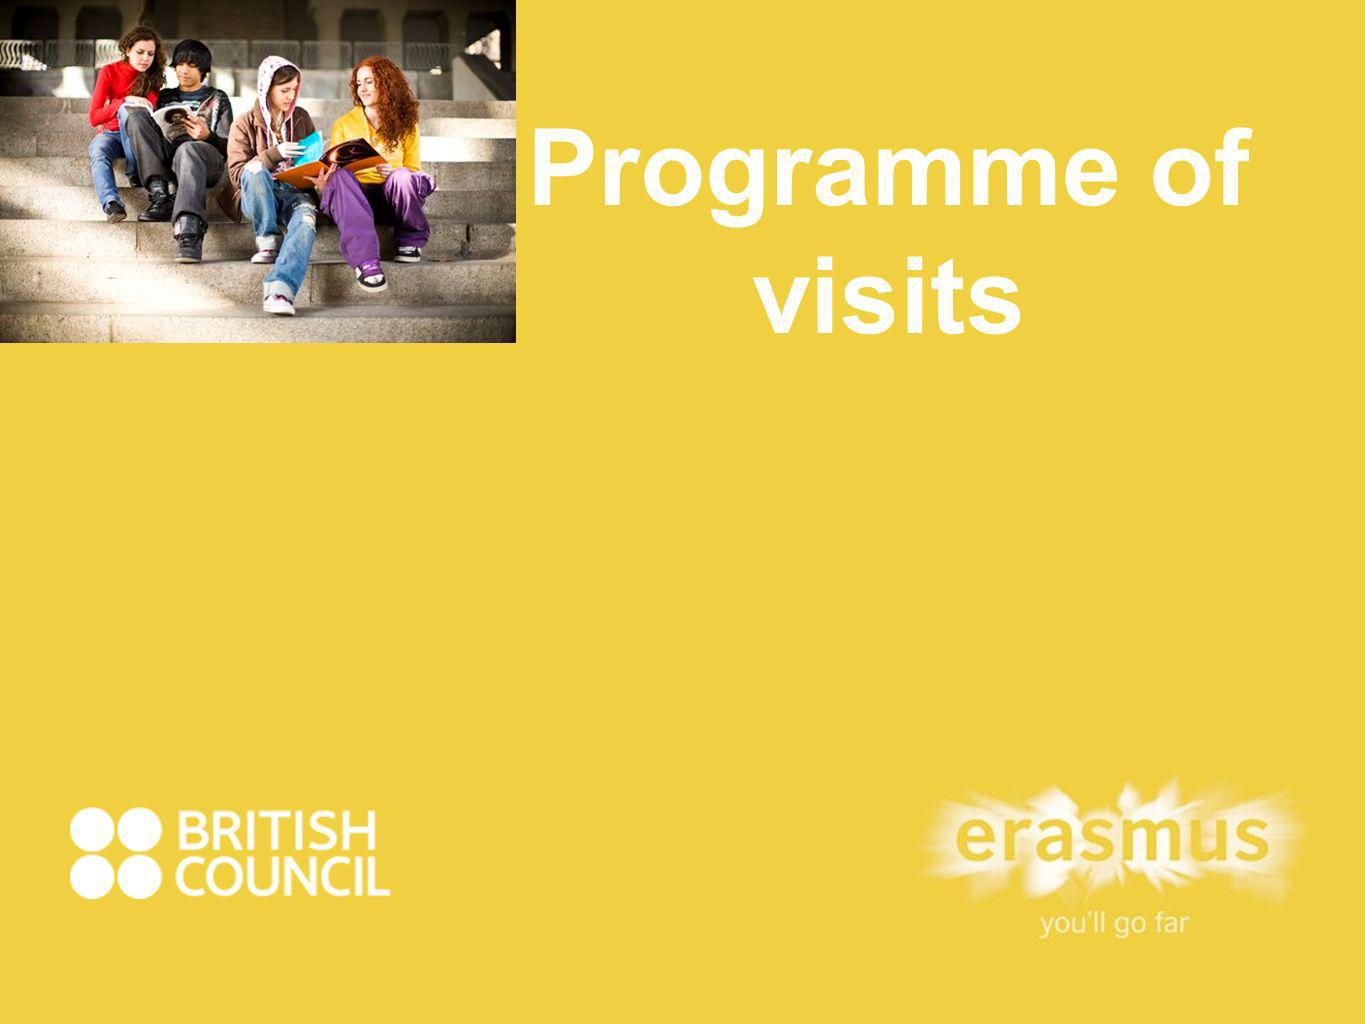 Programme of visits